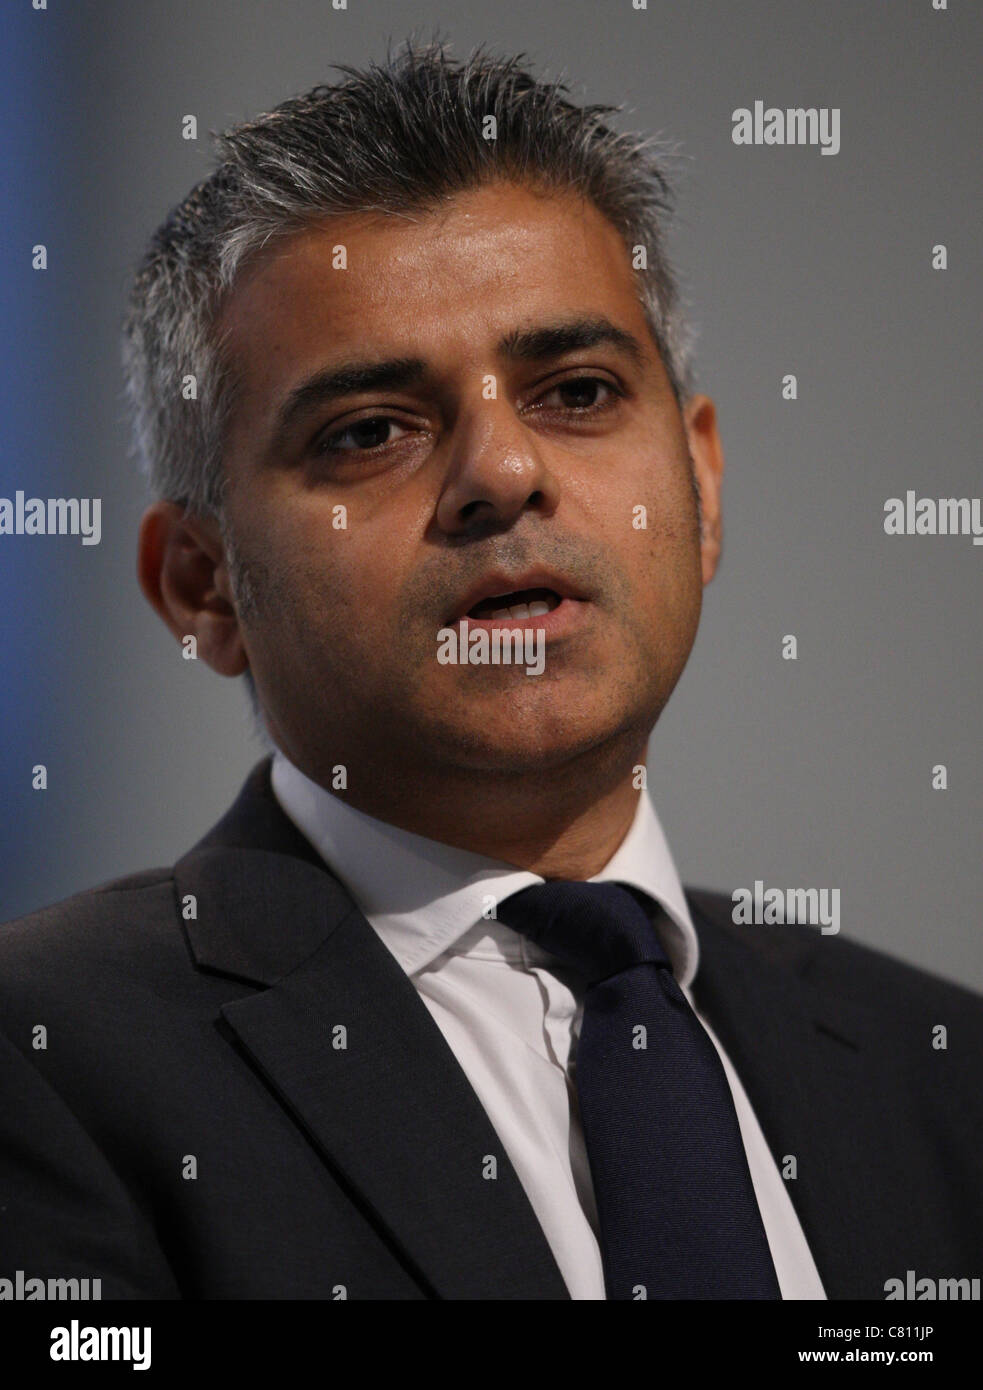 SADIQ KHAN MP SHADOW JUSTICE SECREATRY 28 September 2011 THE AAC LIVERPOOL ENGLAND - Stock Image